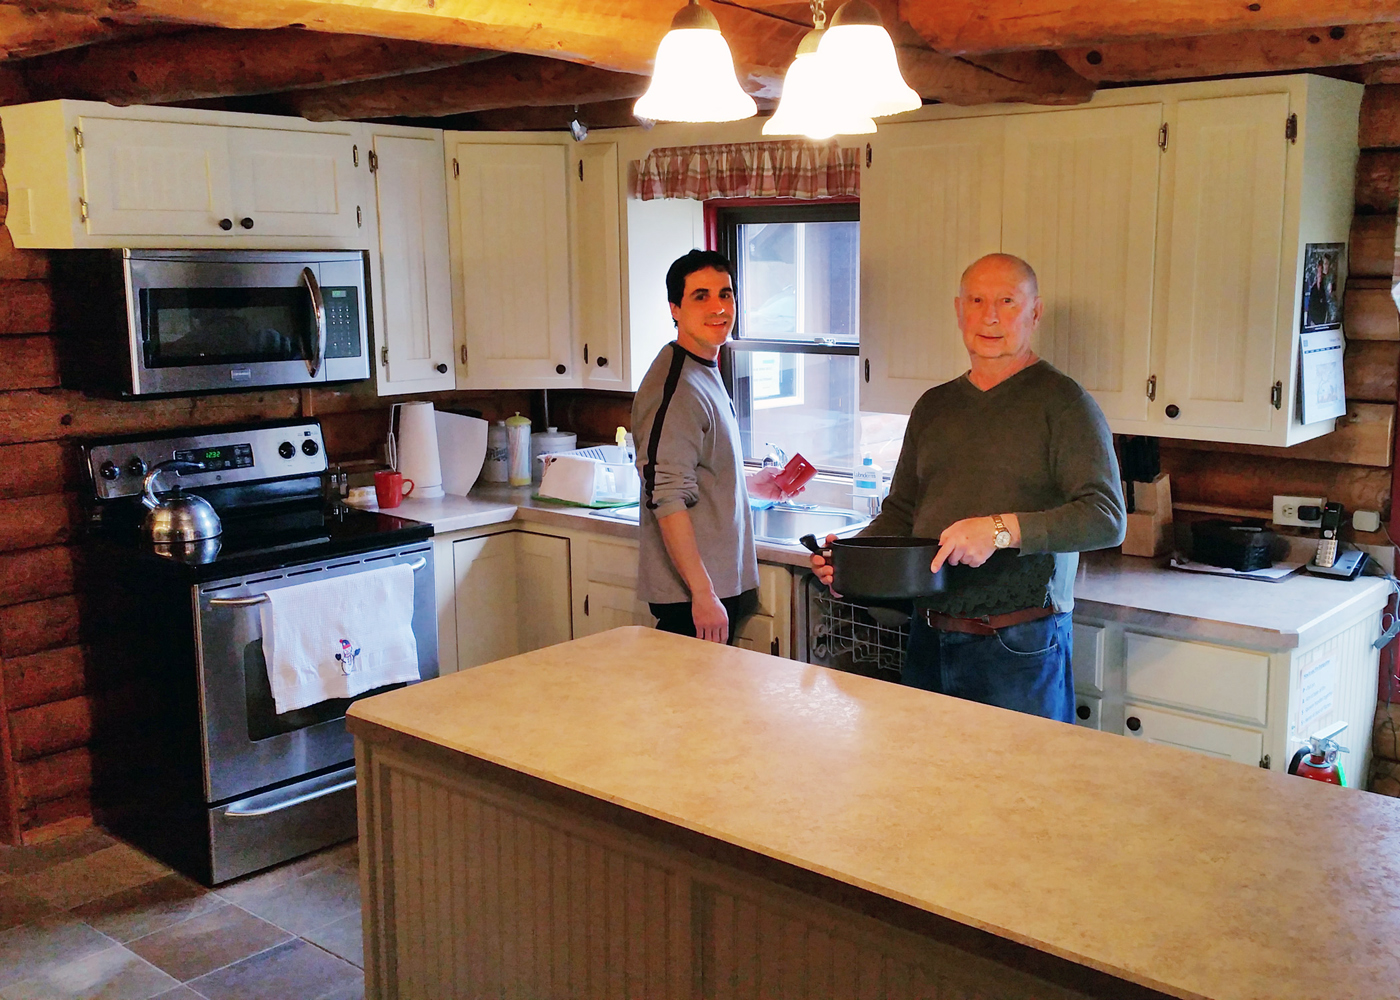 Volunteers (l to r) Dan Melia and Jerry Morissette work in the kitchen at Mt. Carmel House. Photo by Grace Griffee